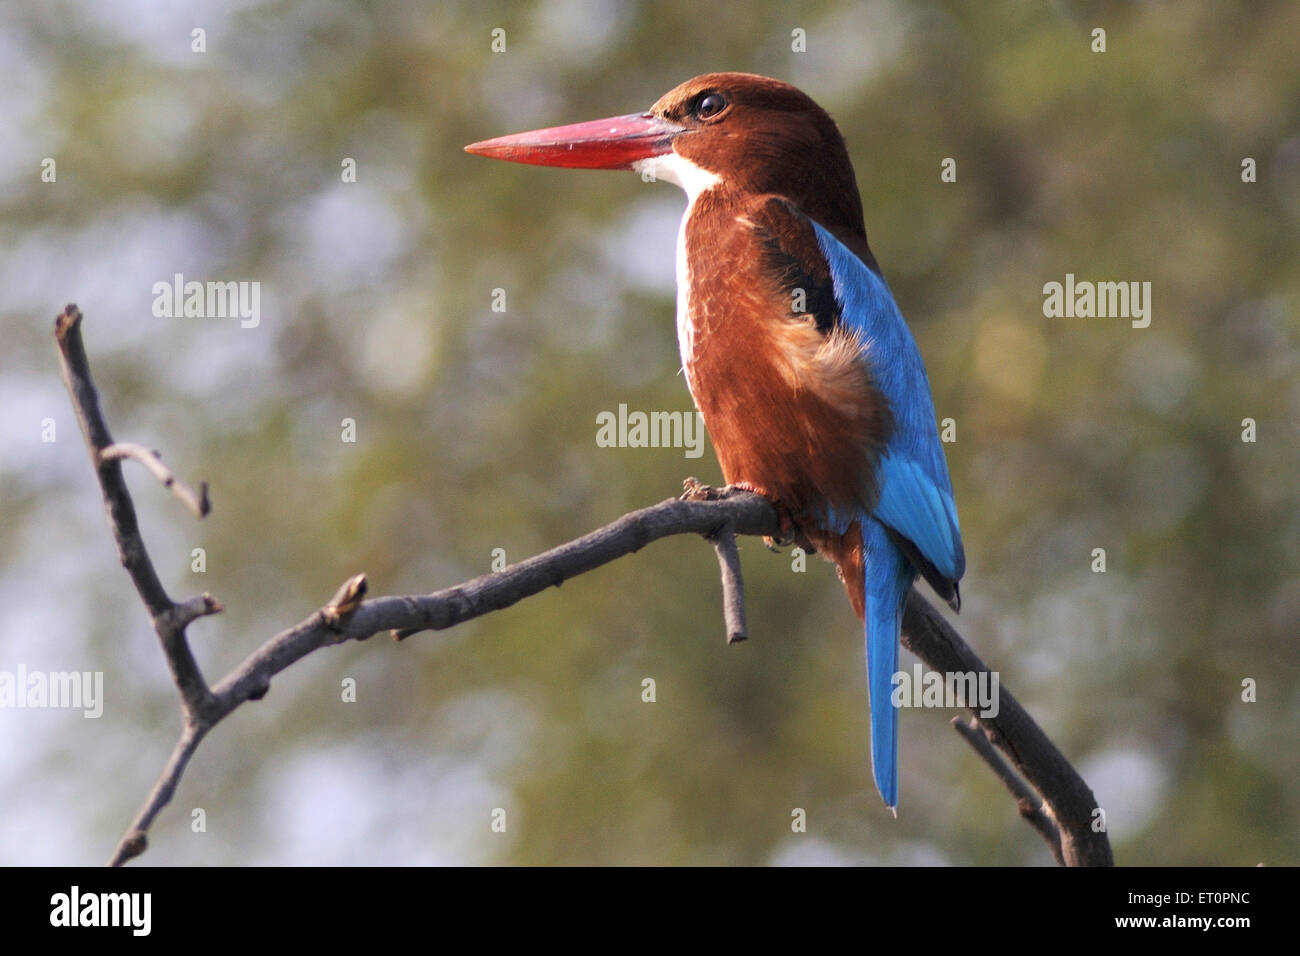 Birds ; white breasted kingfisher halcyon smyrnensis sitting on branch ; Bharatpur ; Rajasthan ; India - Stock Image